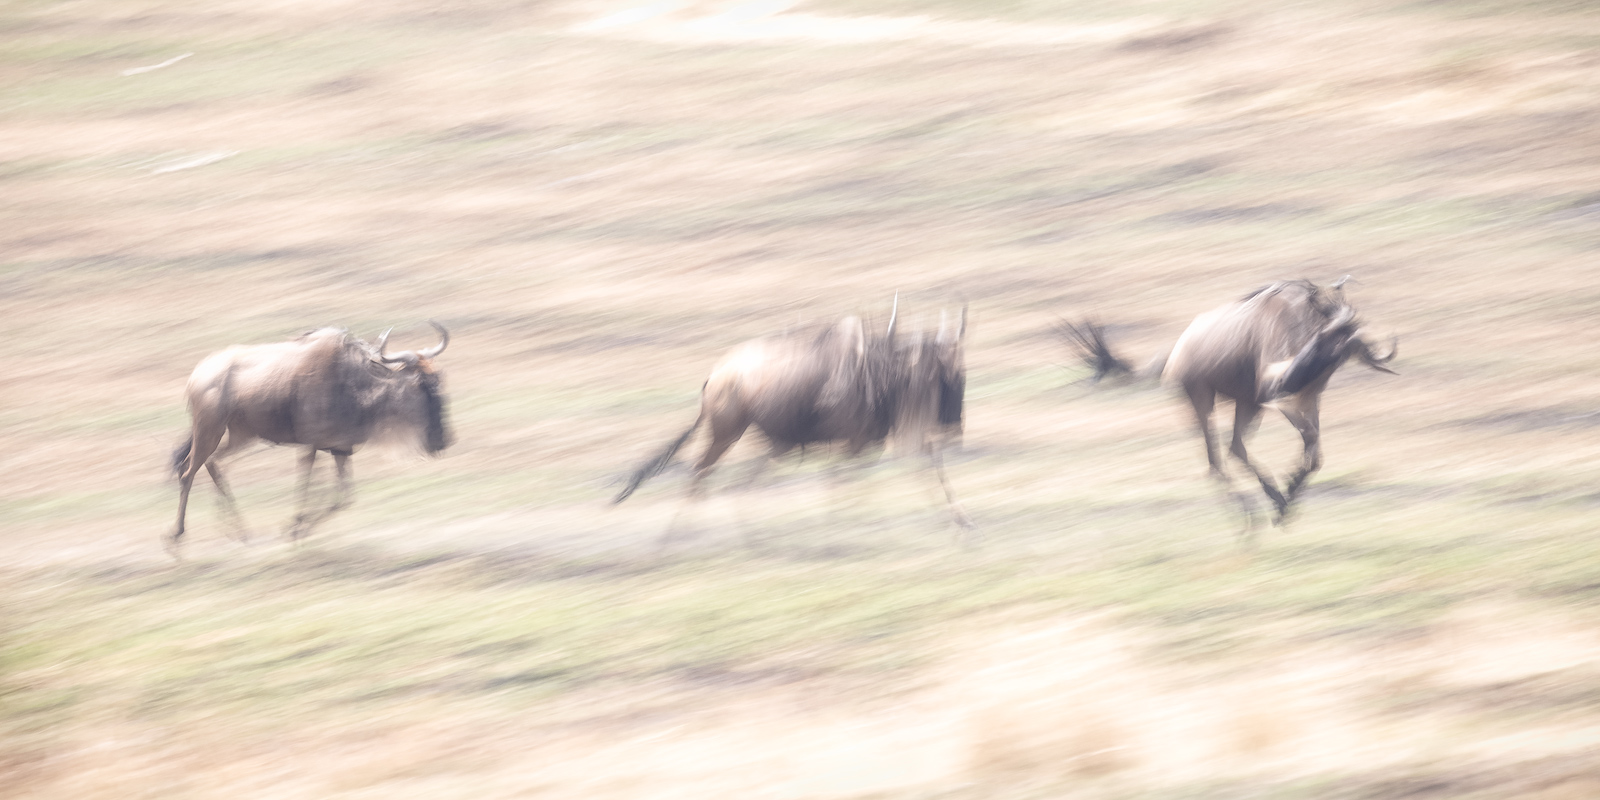 Wildebeests running in Kenya's Masai Mara during the Great Migration as they approach the Mara River crossing.